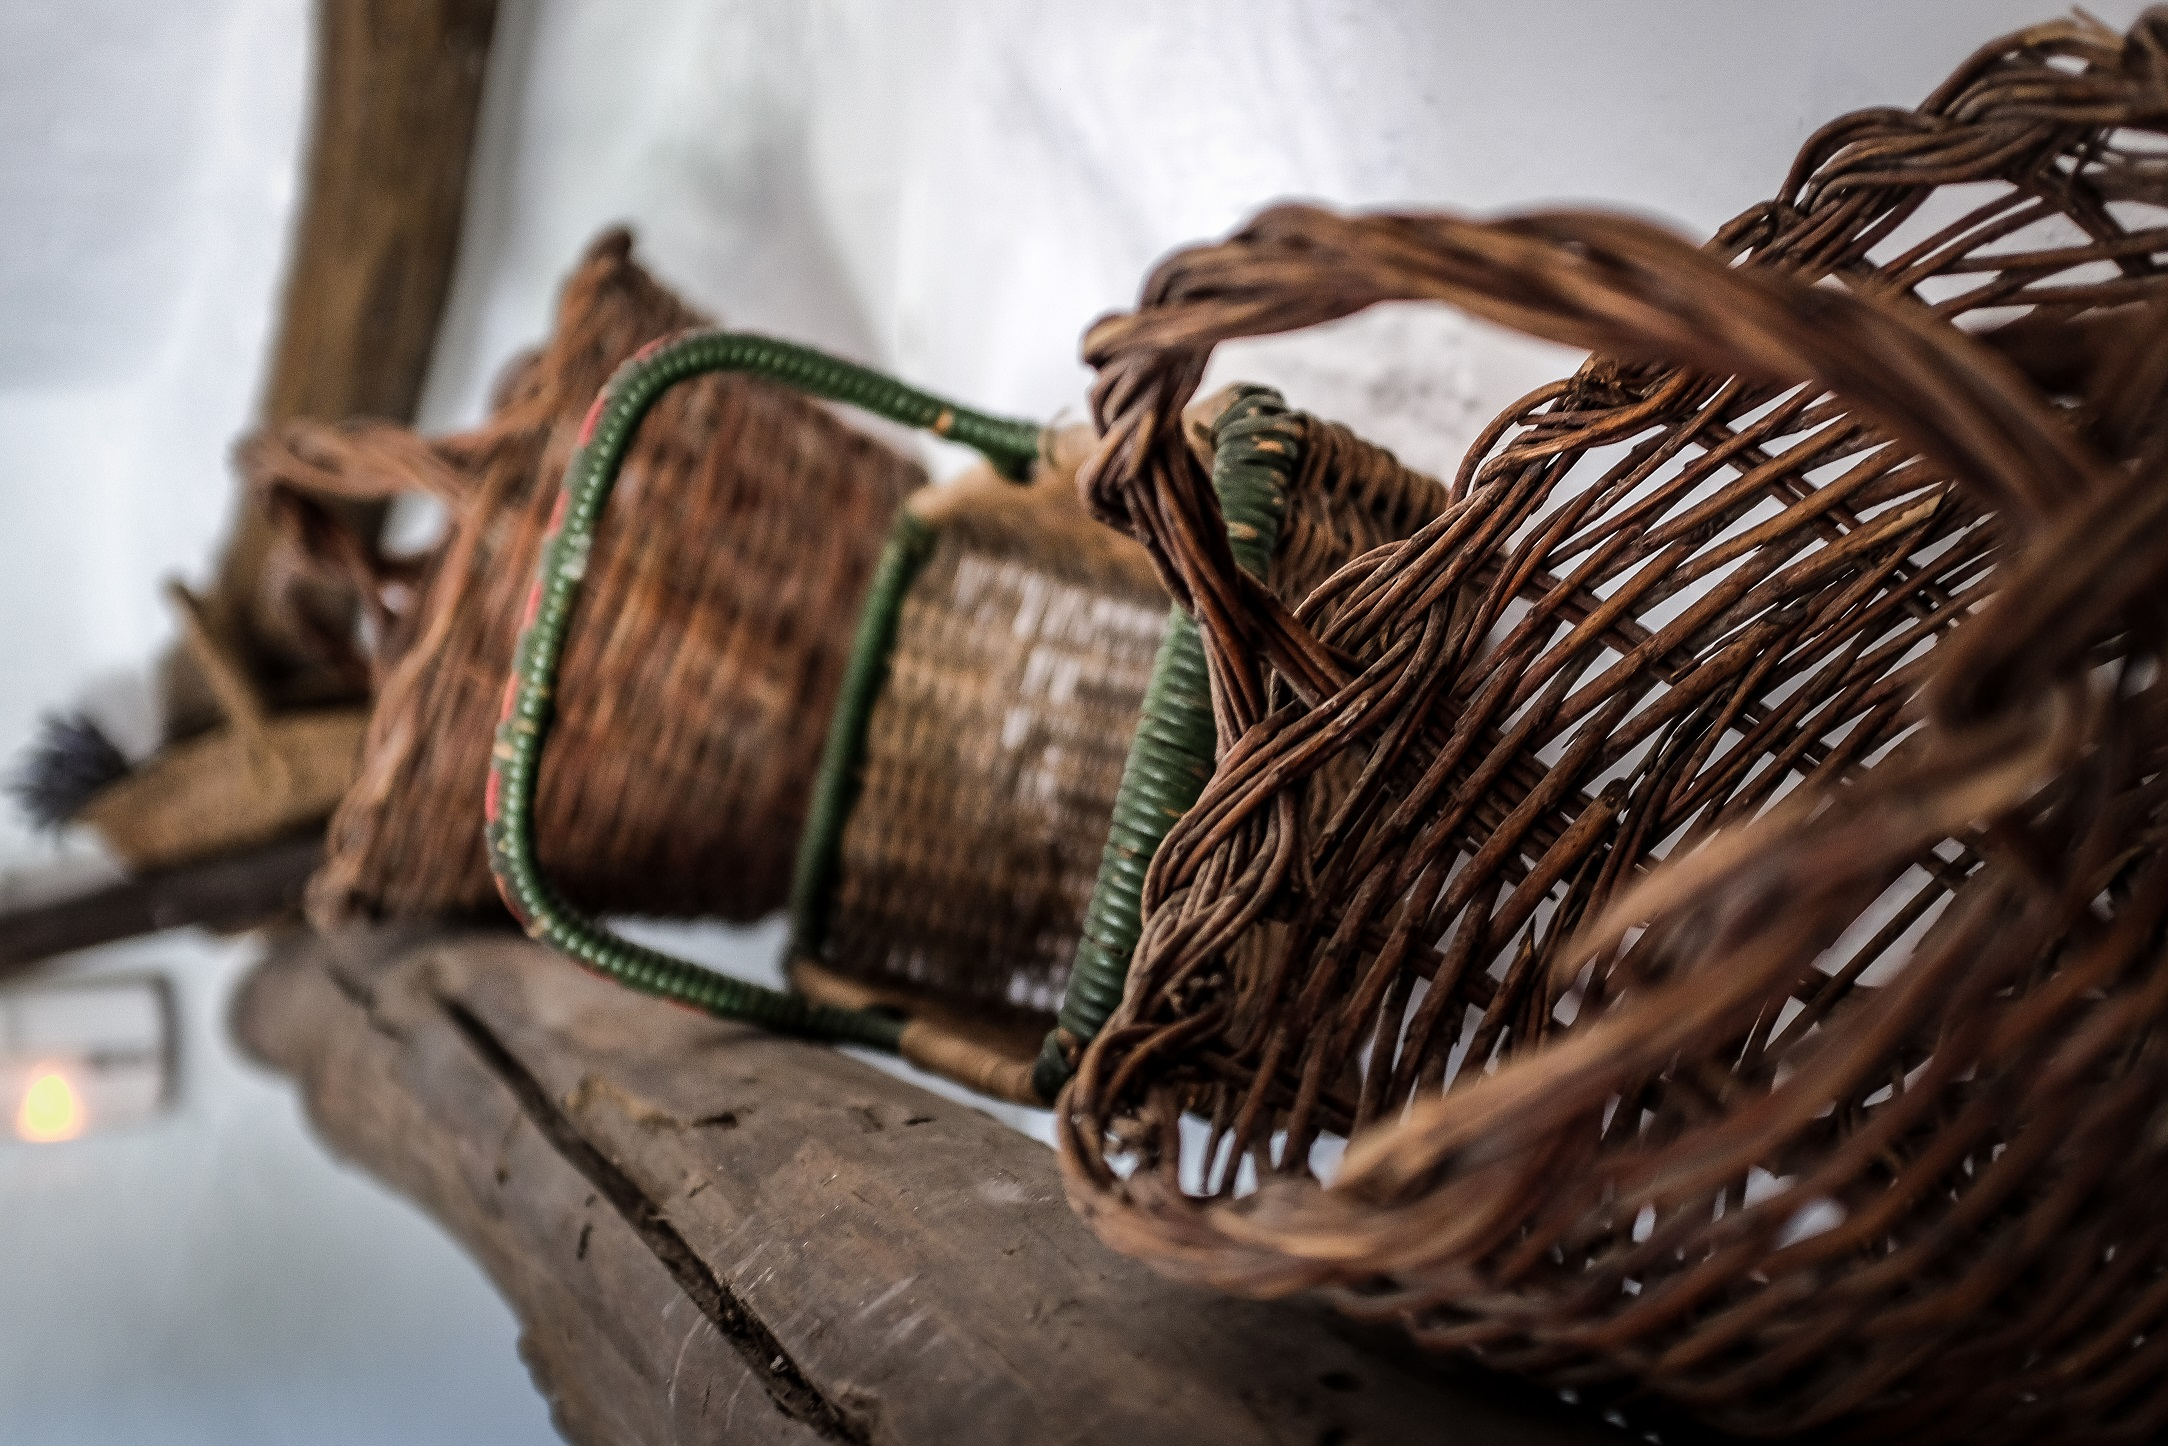 Old basket collection at rural b&b Finca Las Encinas near Iznajar